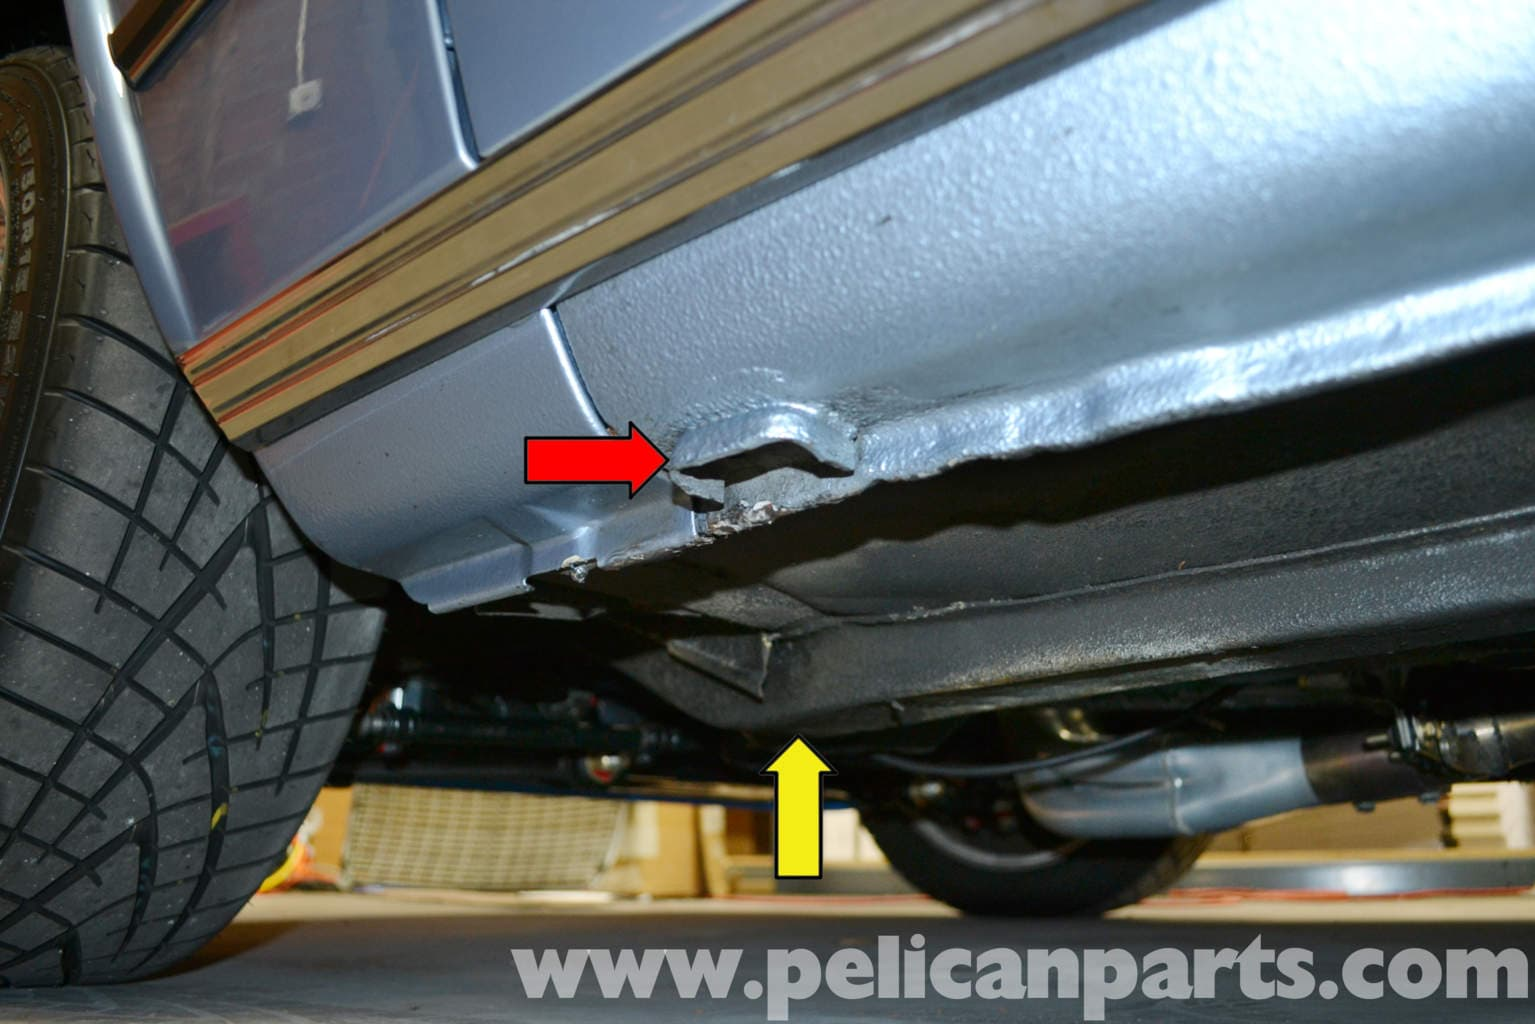 Bmw 2002 Jacking Up Your Vehicle 1966 1976 Pelican Parts Diy Maintenance Article